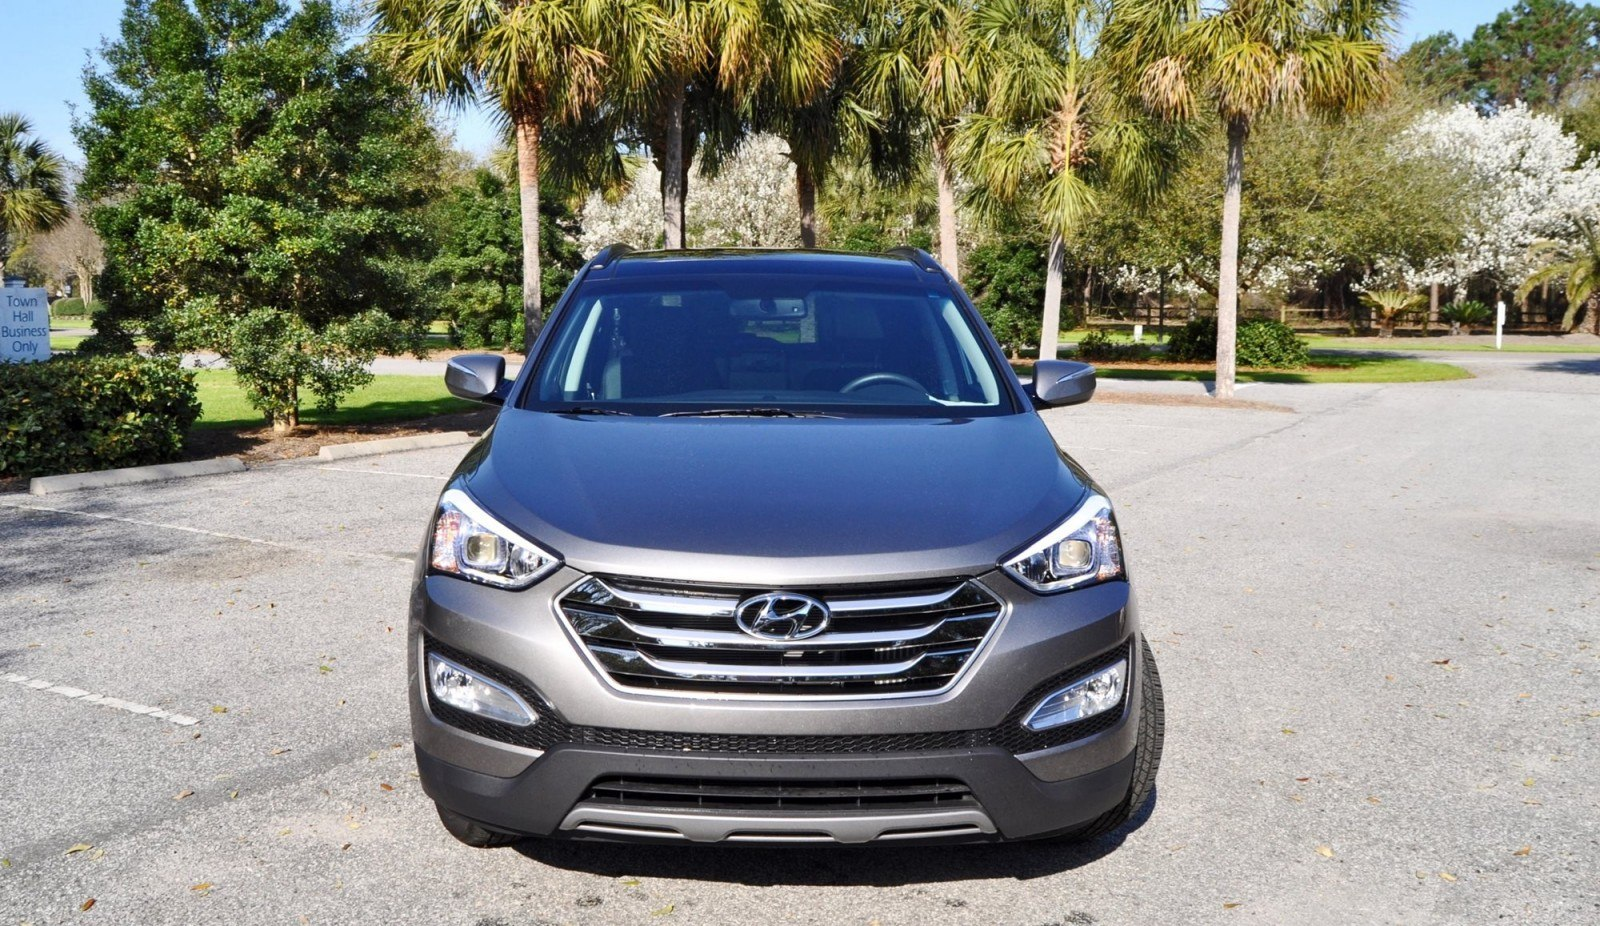 23 model 2015 hyundai santa fe sport review. Black Bedroom Furniture Sets. Home Design Ideas